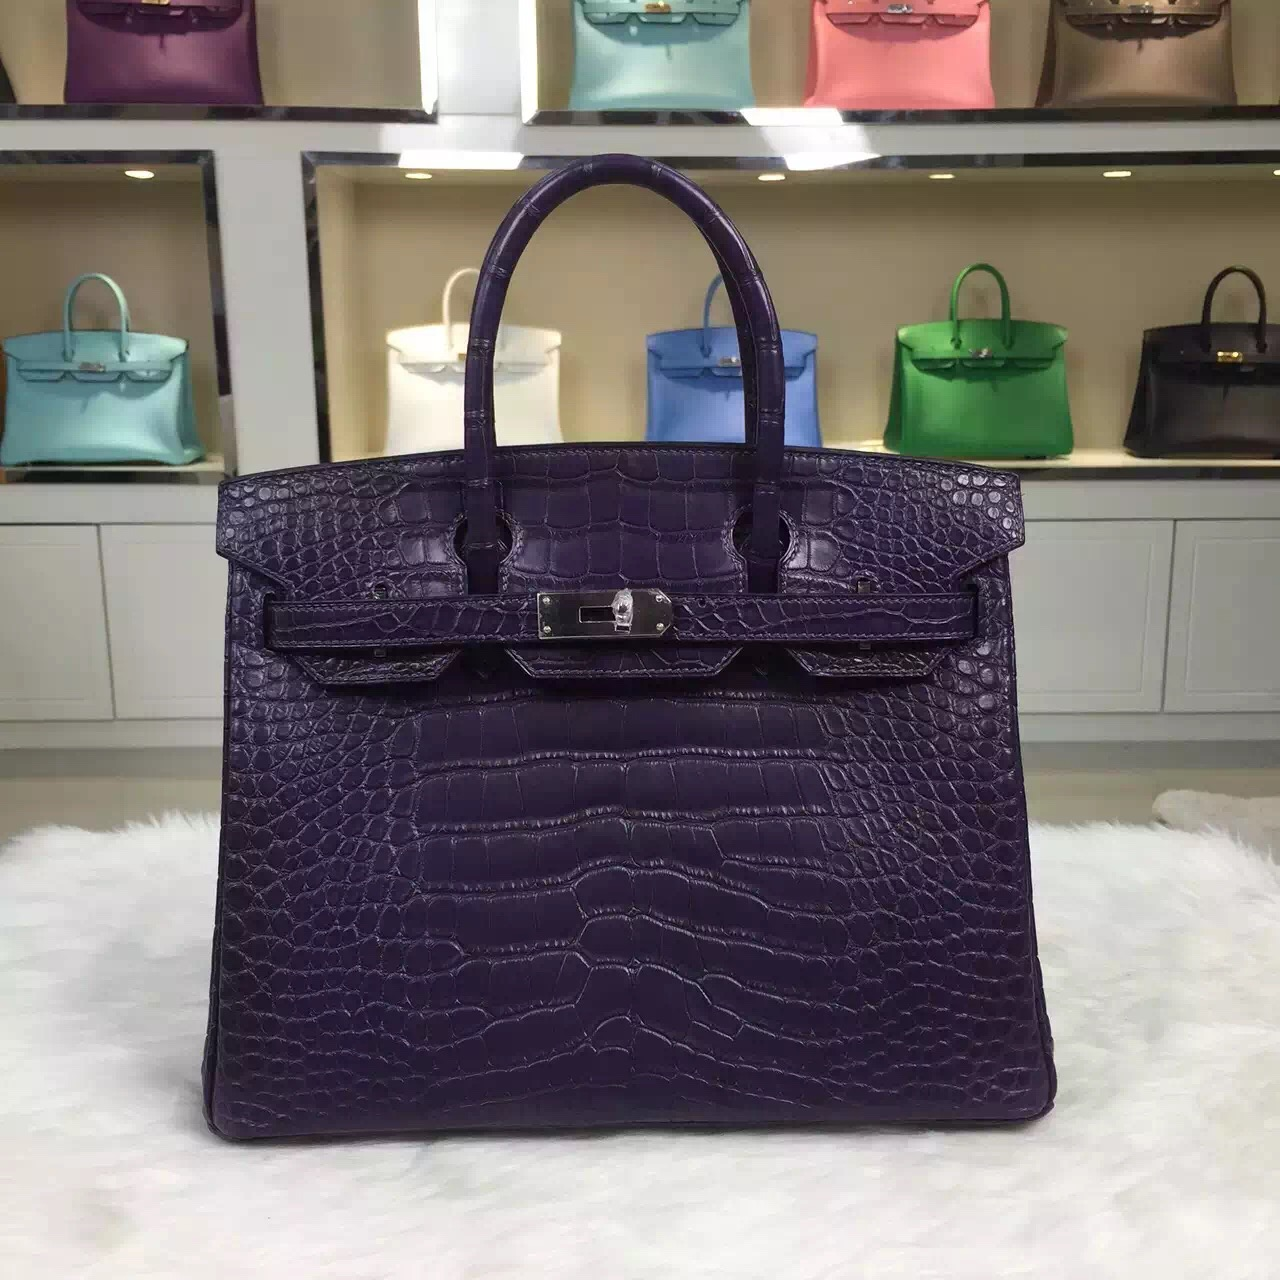 Wholesale Hermes Black Currant Purple Crocodile matt Leather Birkin Bag 30CM